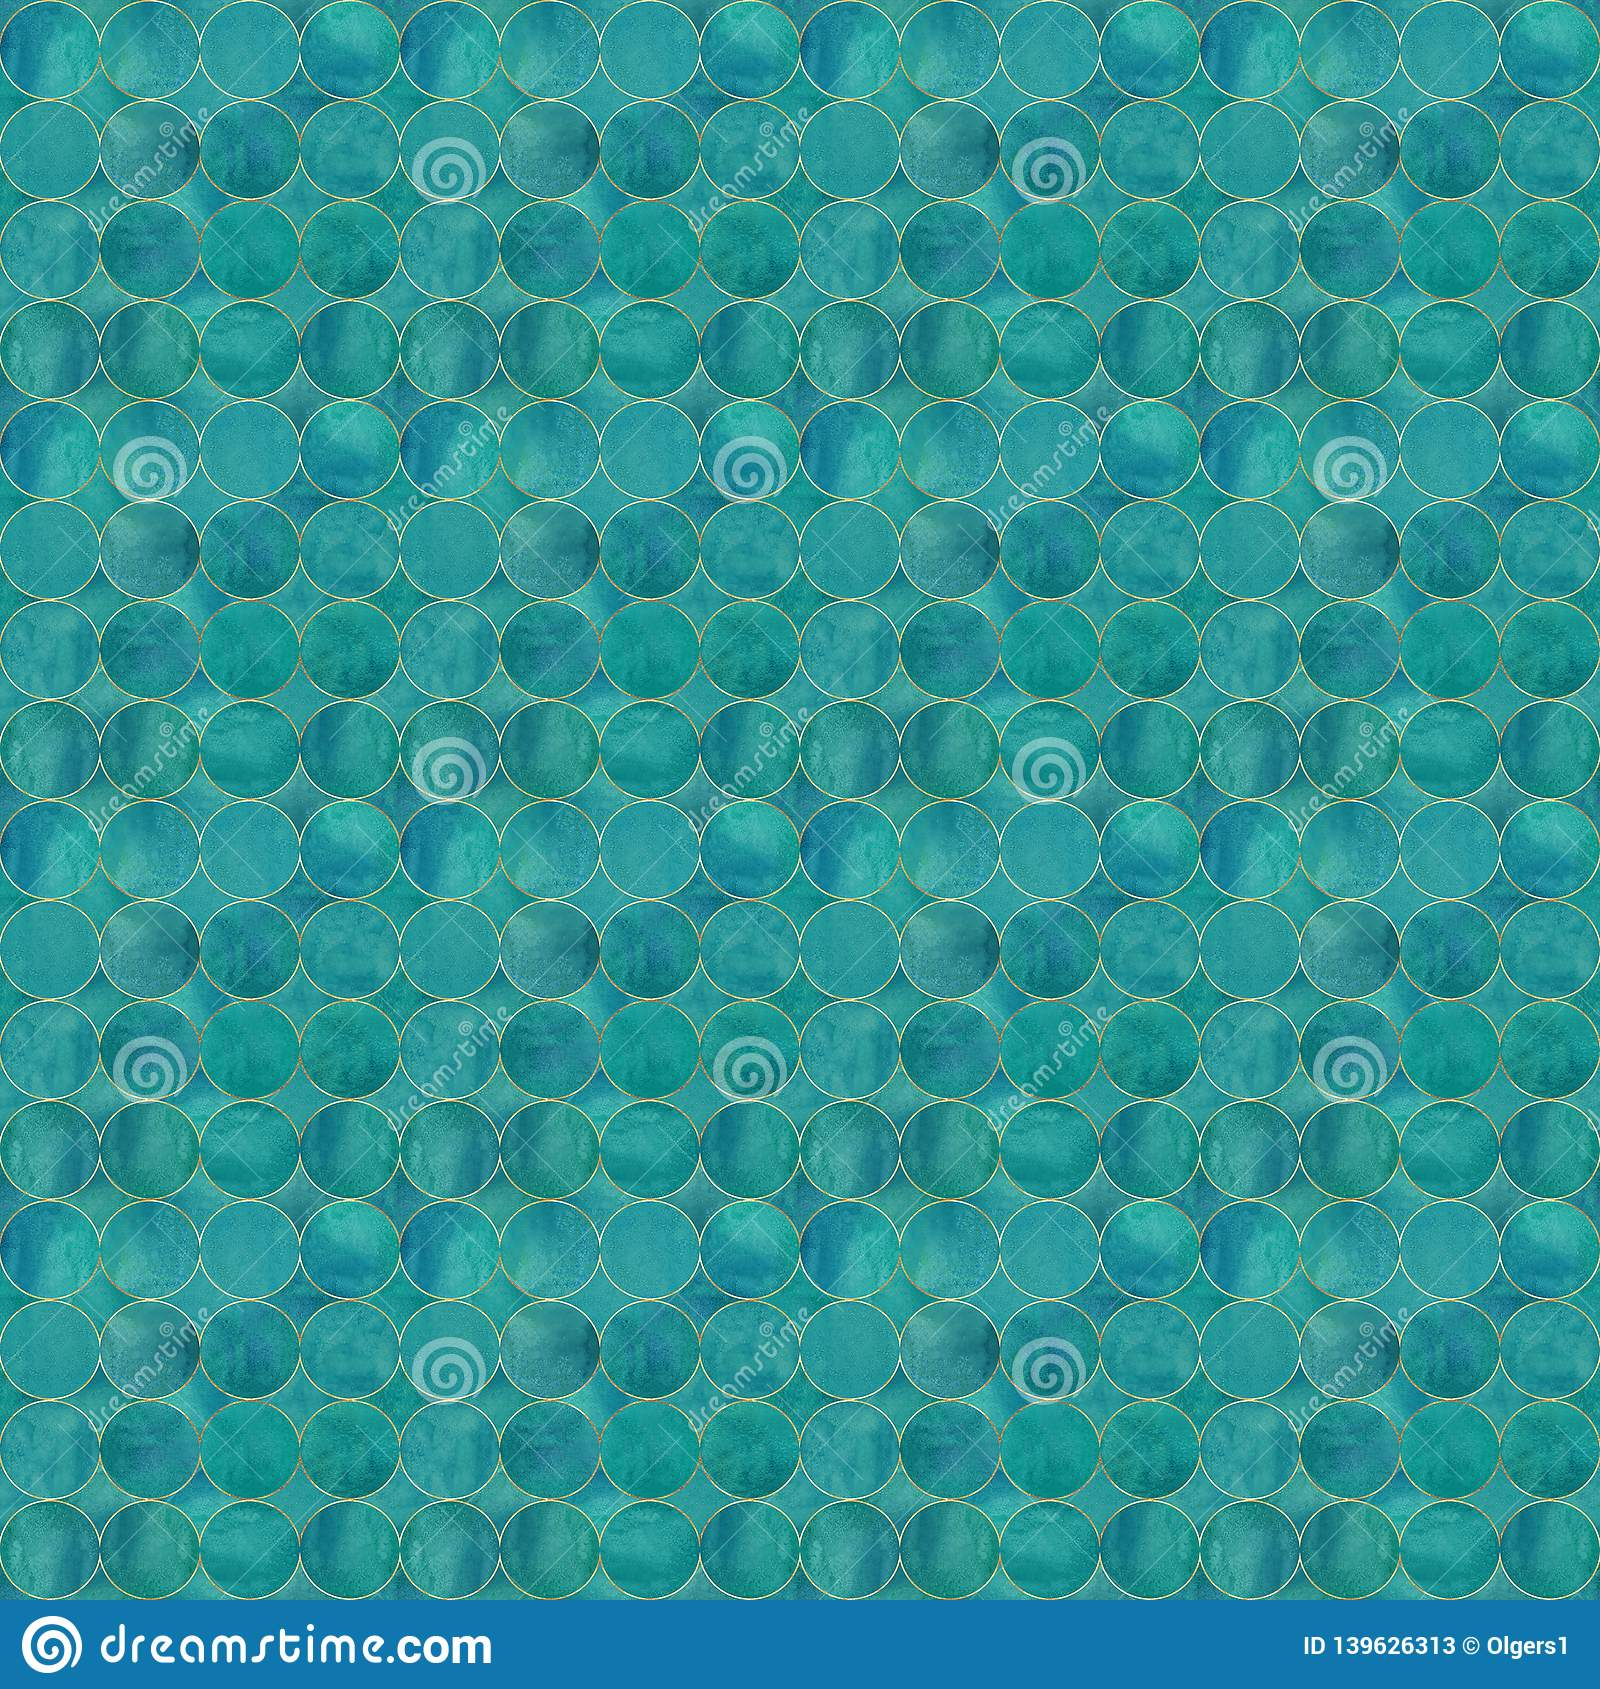 Abstract Watercolor Background With Dark Turquoise Color